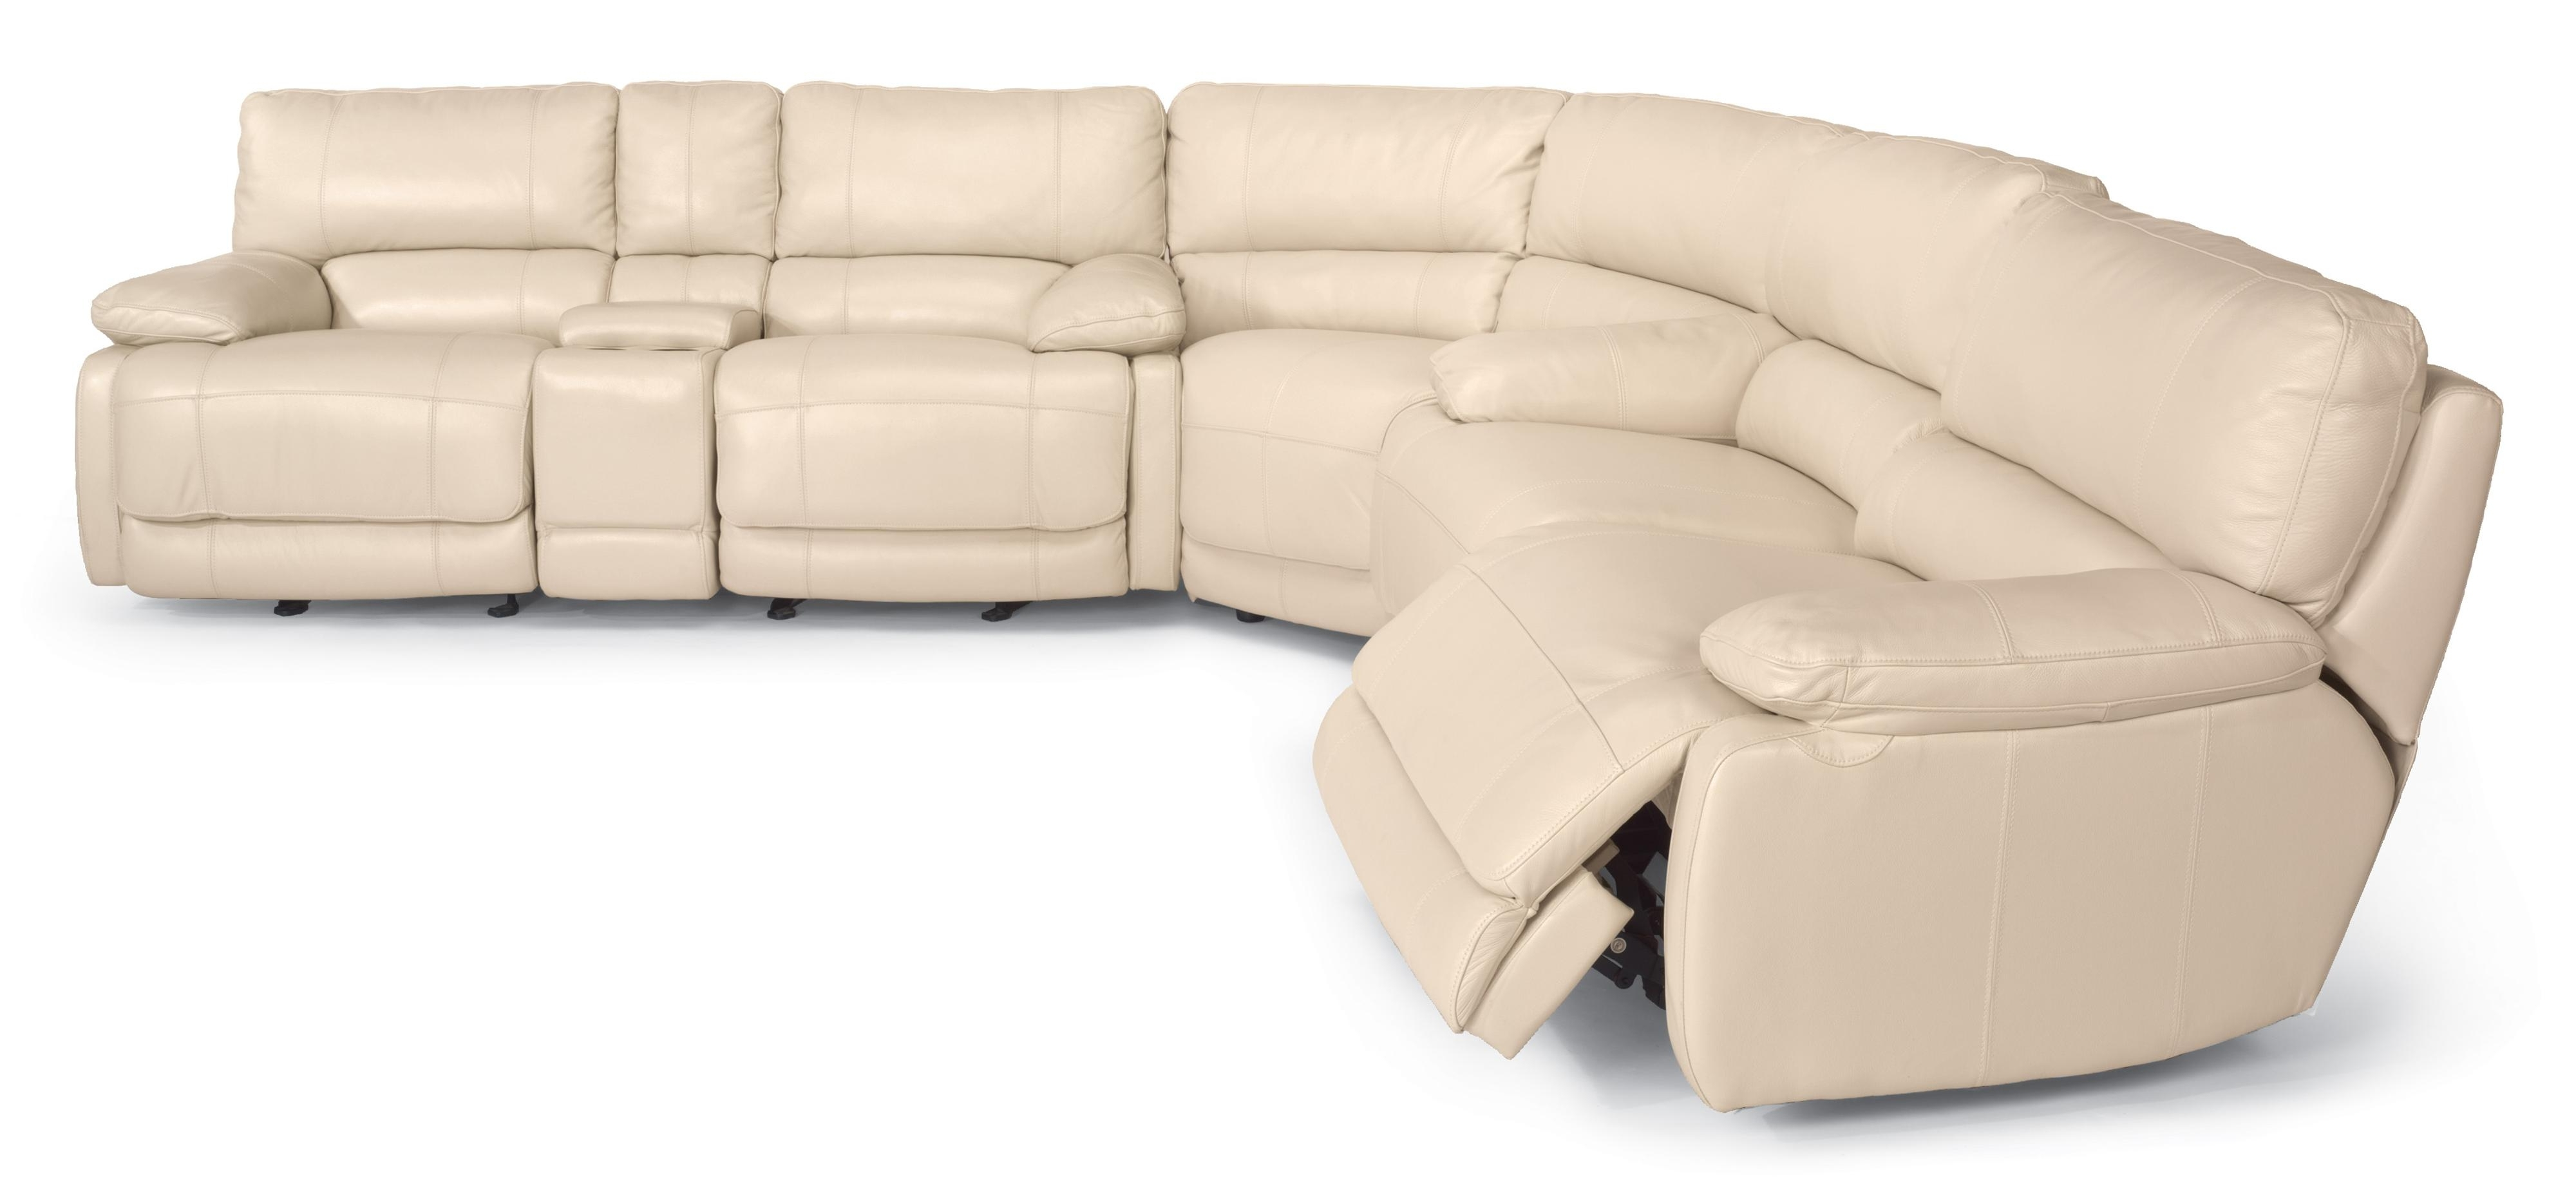 Macon Ga Sectional Sofas For Well Known Flexsteel Latitudes – Hermosa Reclining Sectional Sofa – Ahfa (View 10 of 20)